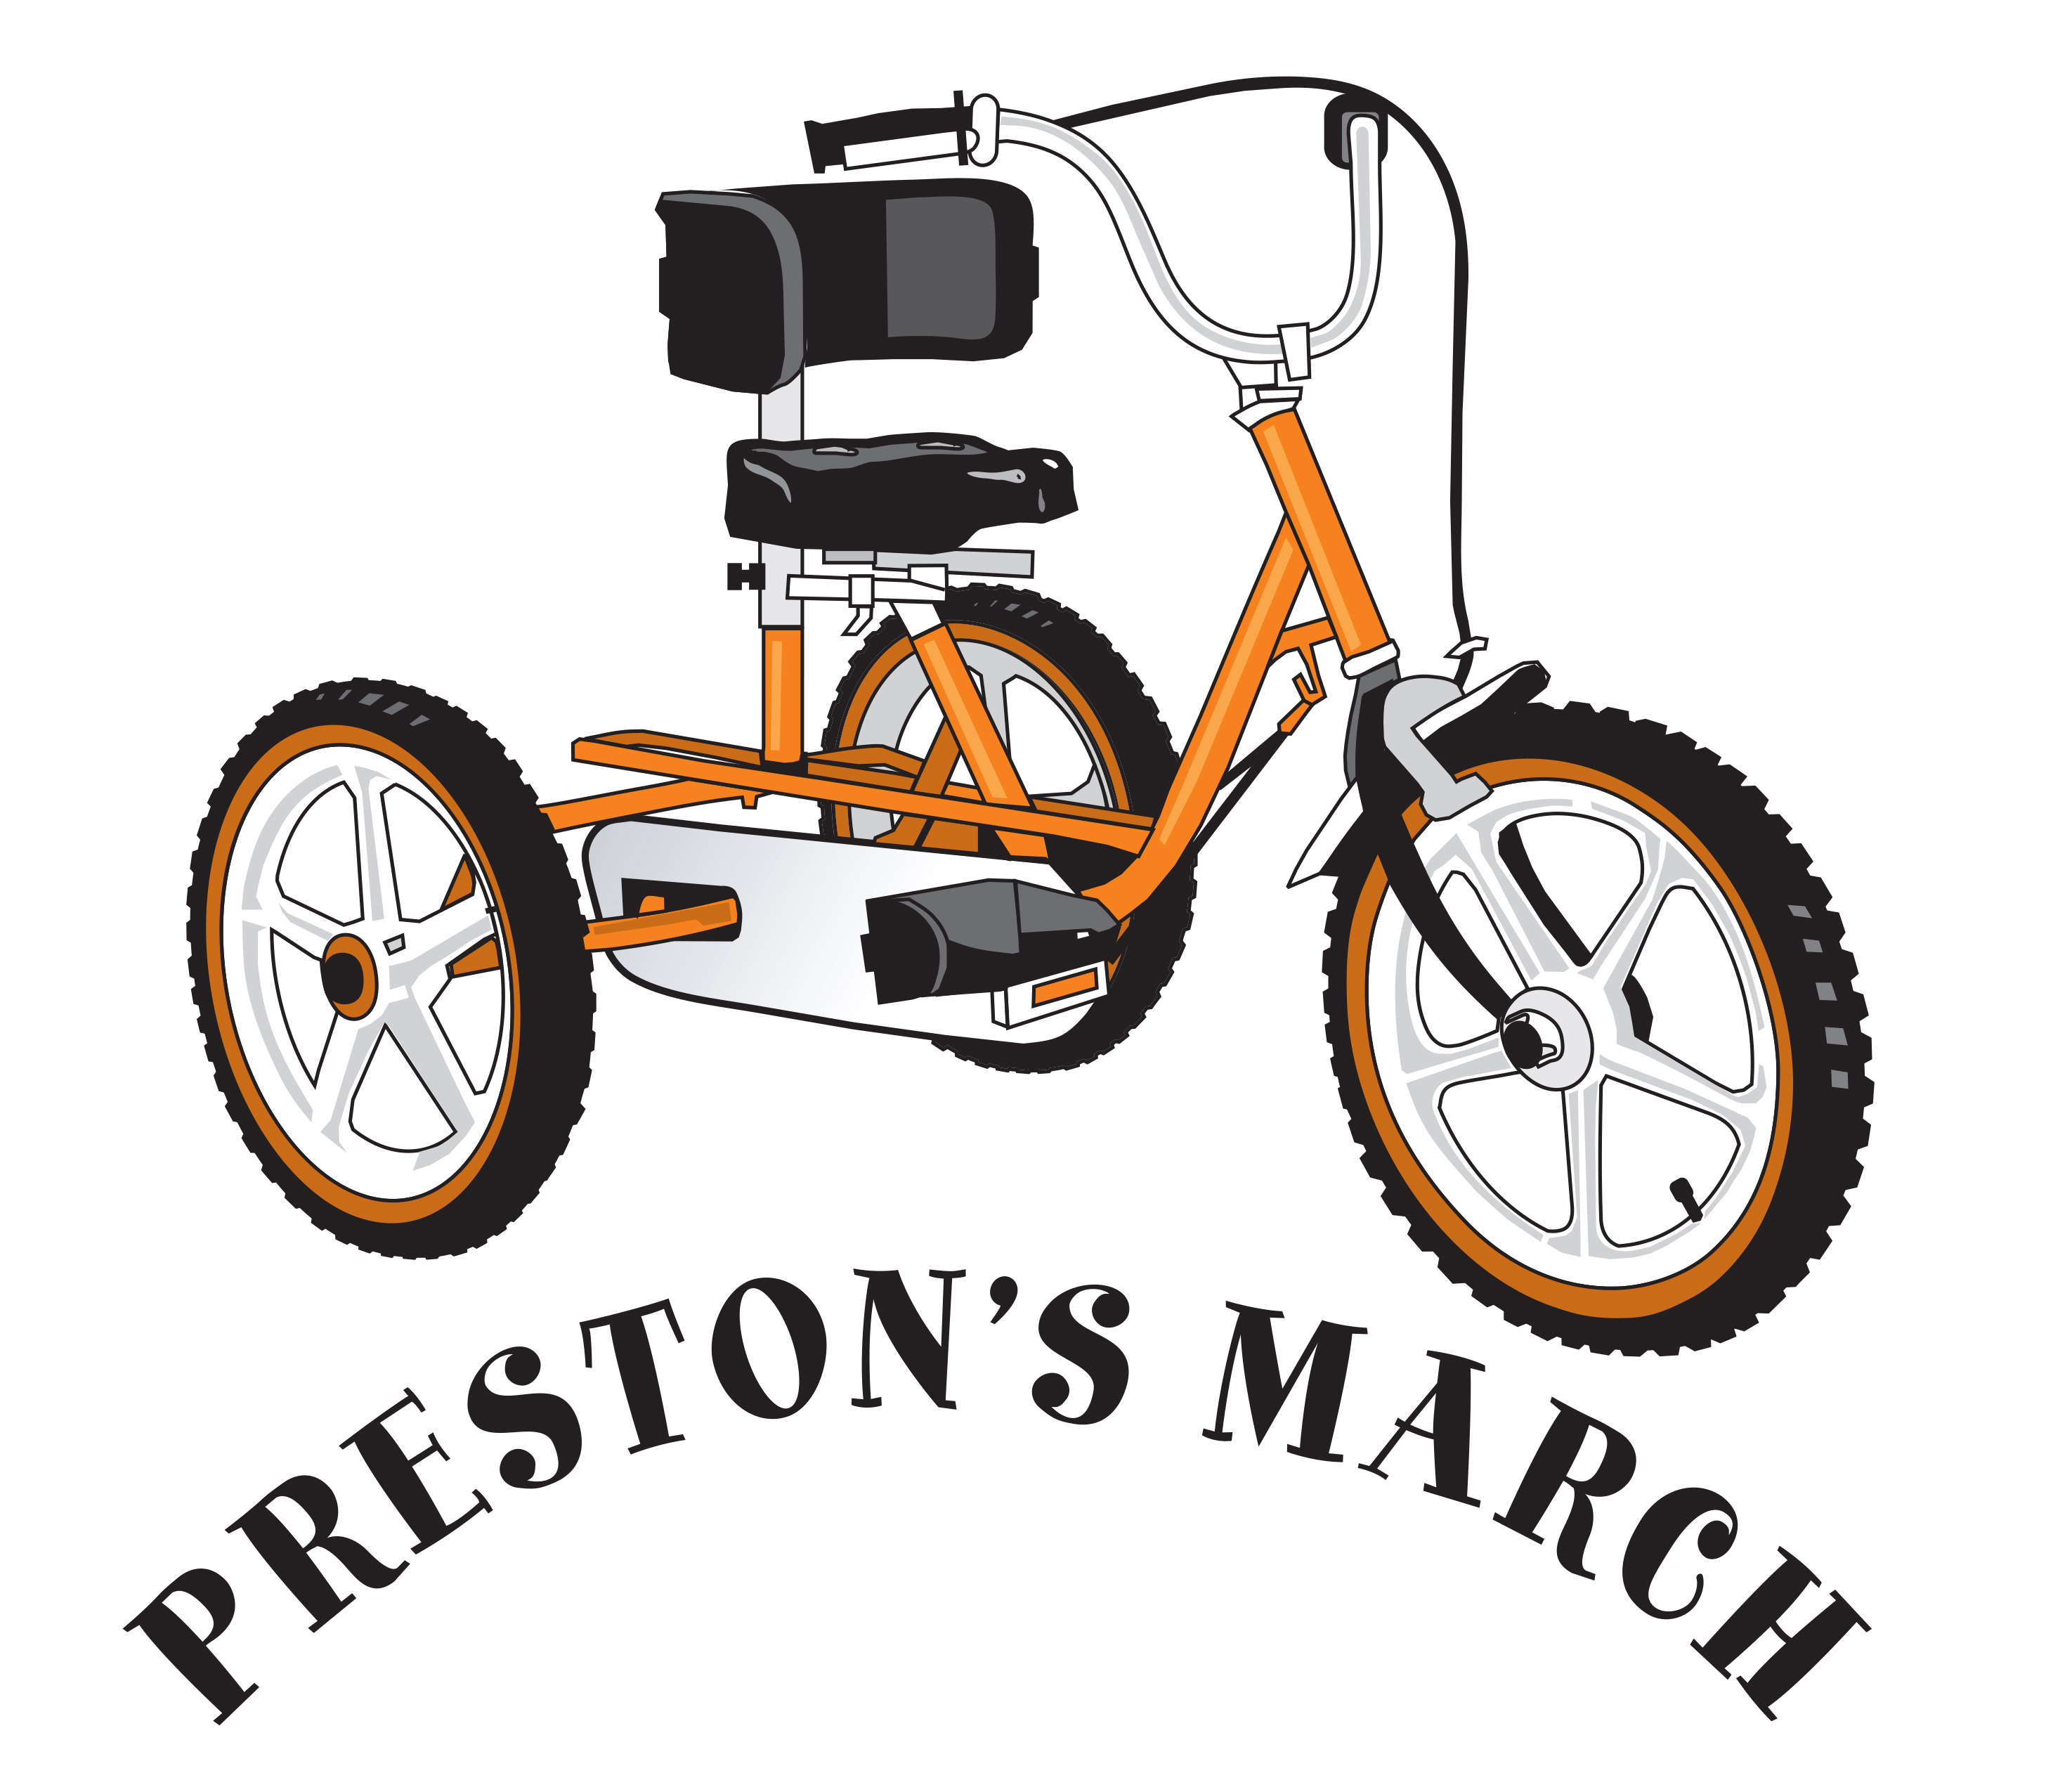 Preston's March Logo